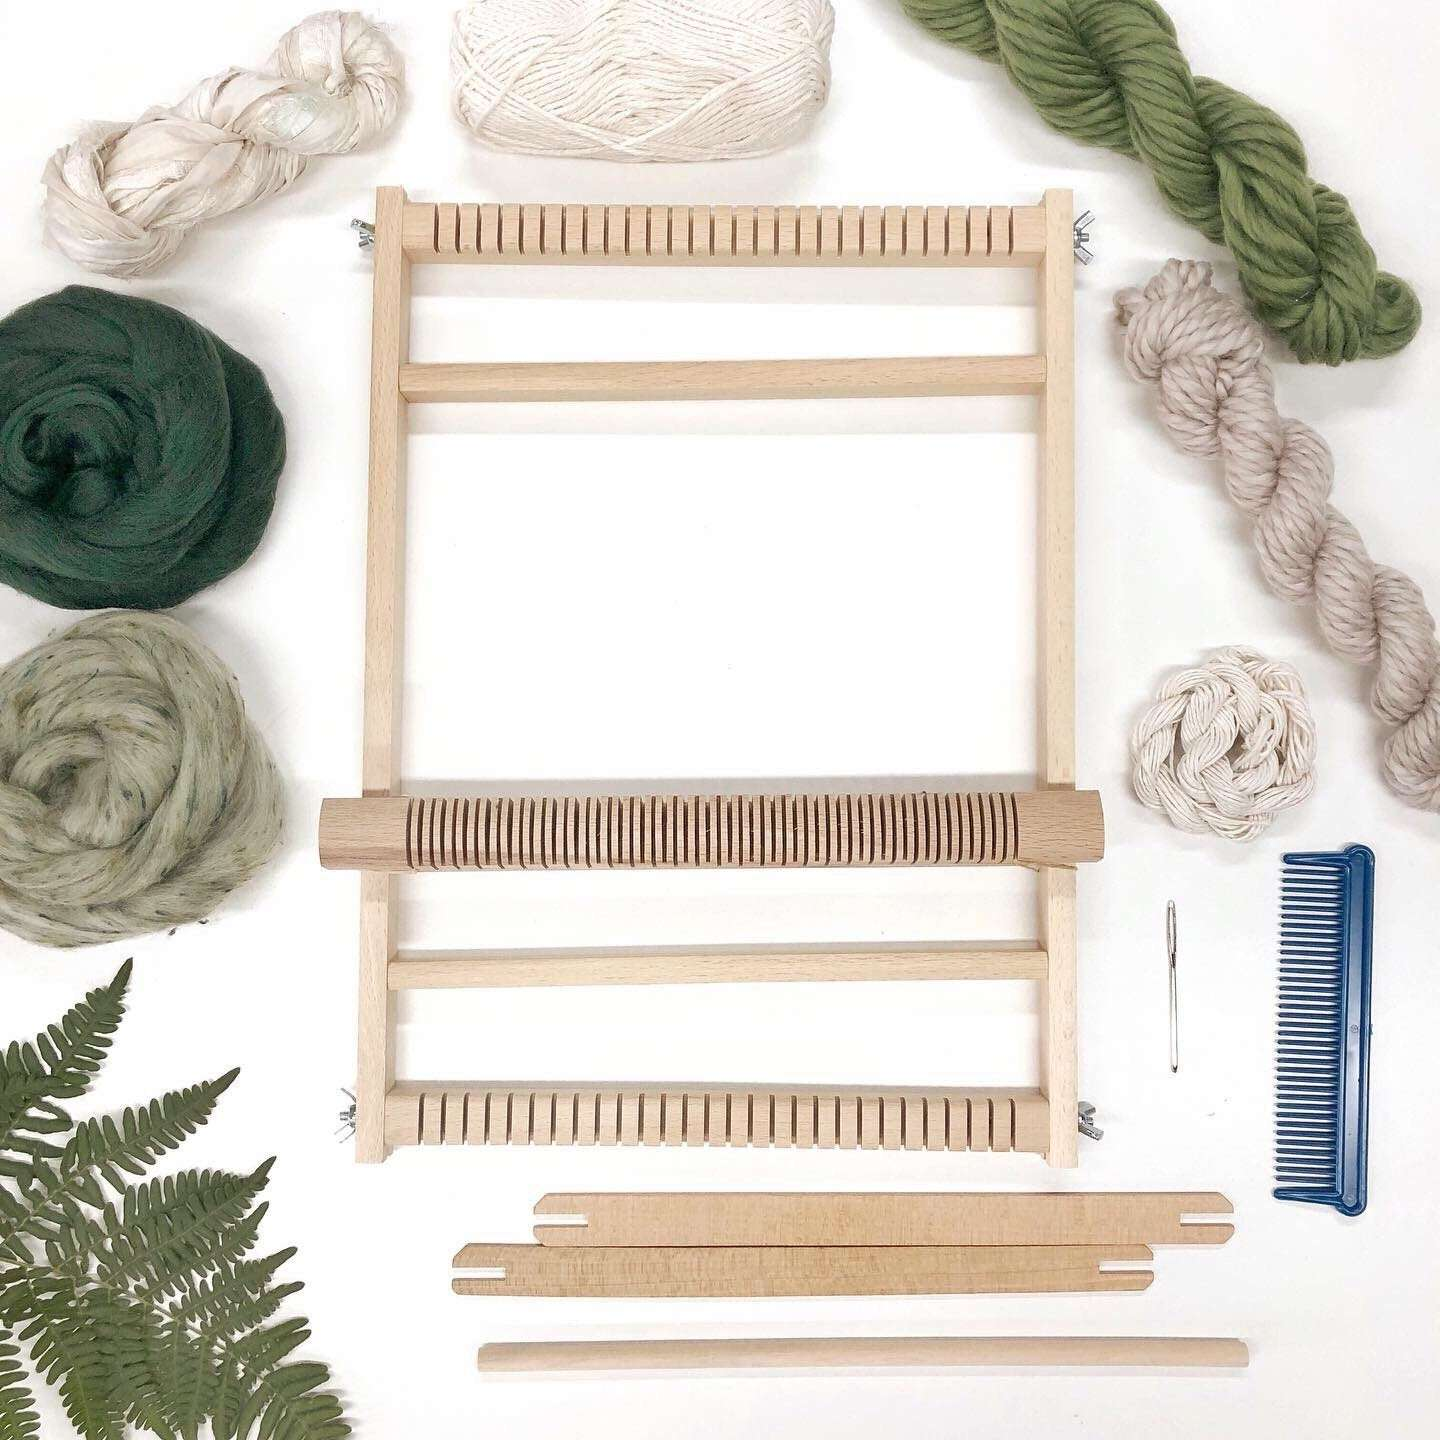 weaving beginner kit